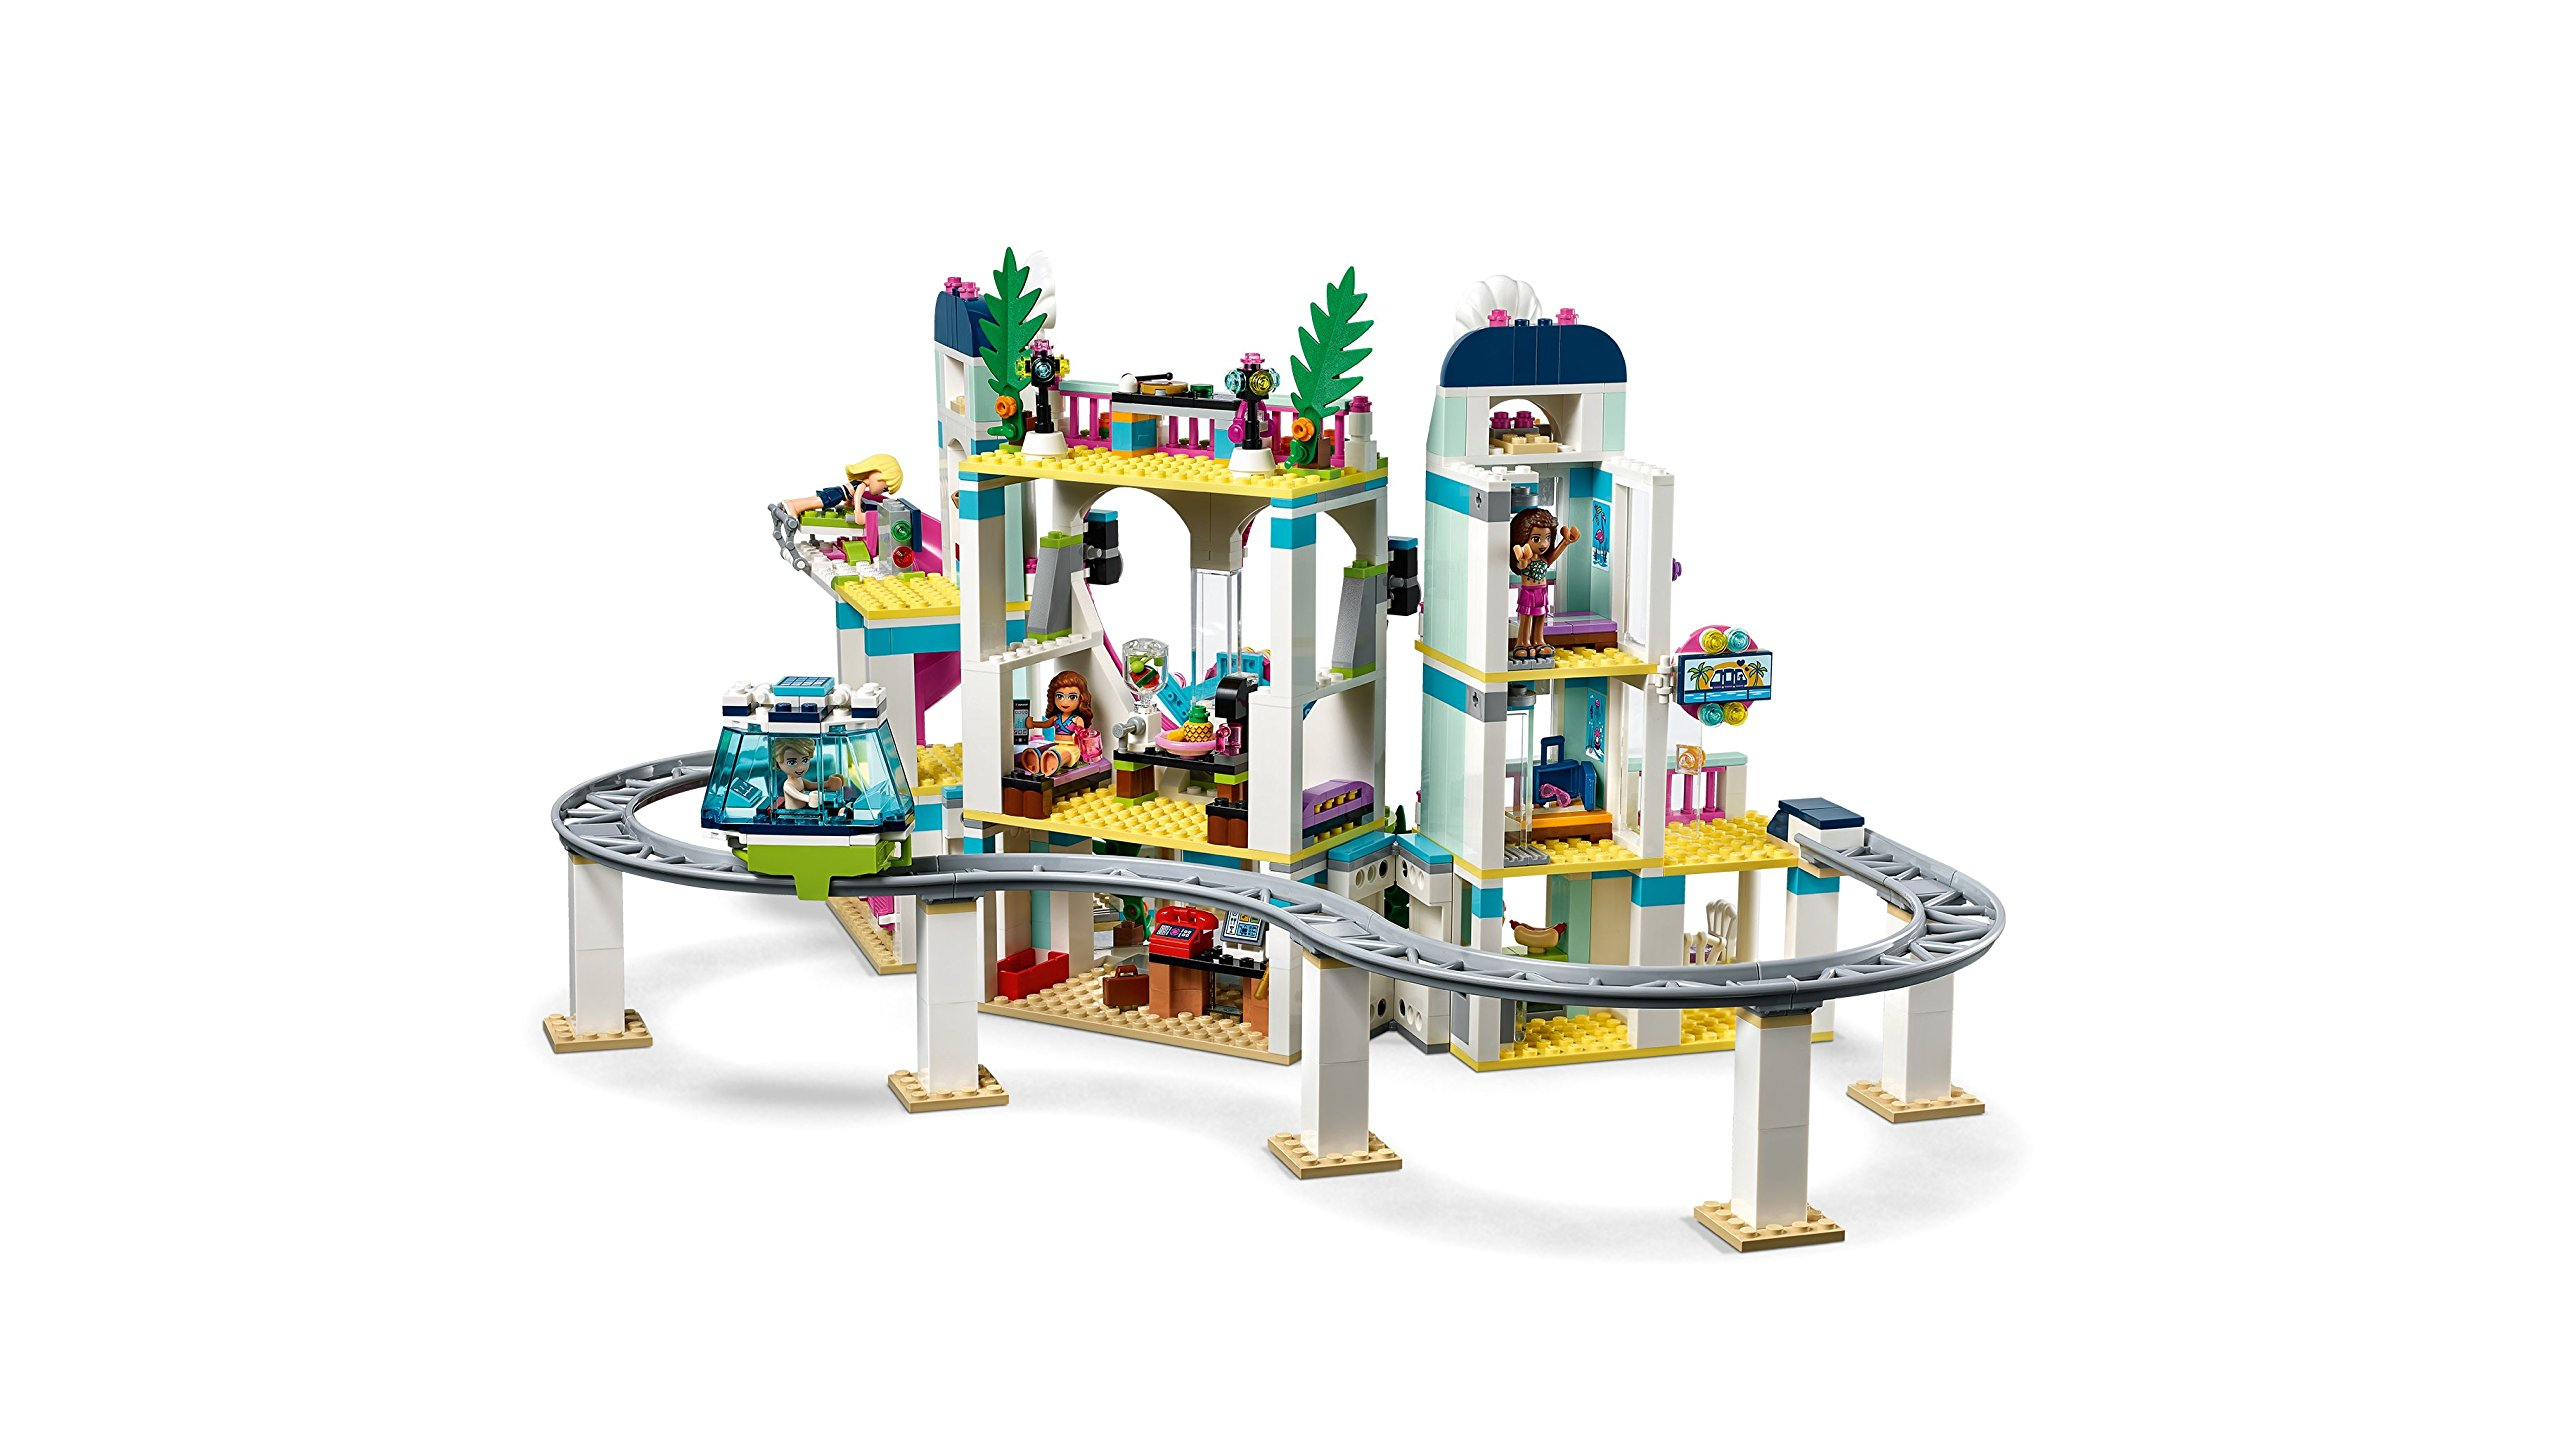 Lego Friends Il Resort di Heartlake City, 41347 5 spesavip